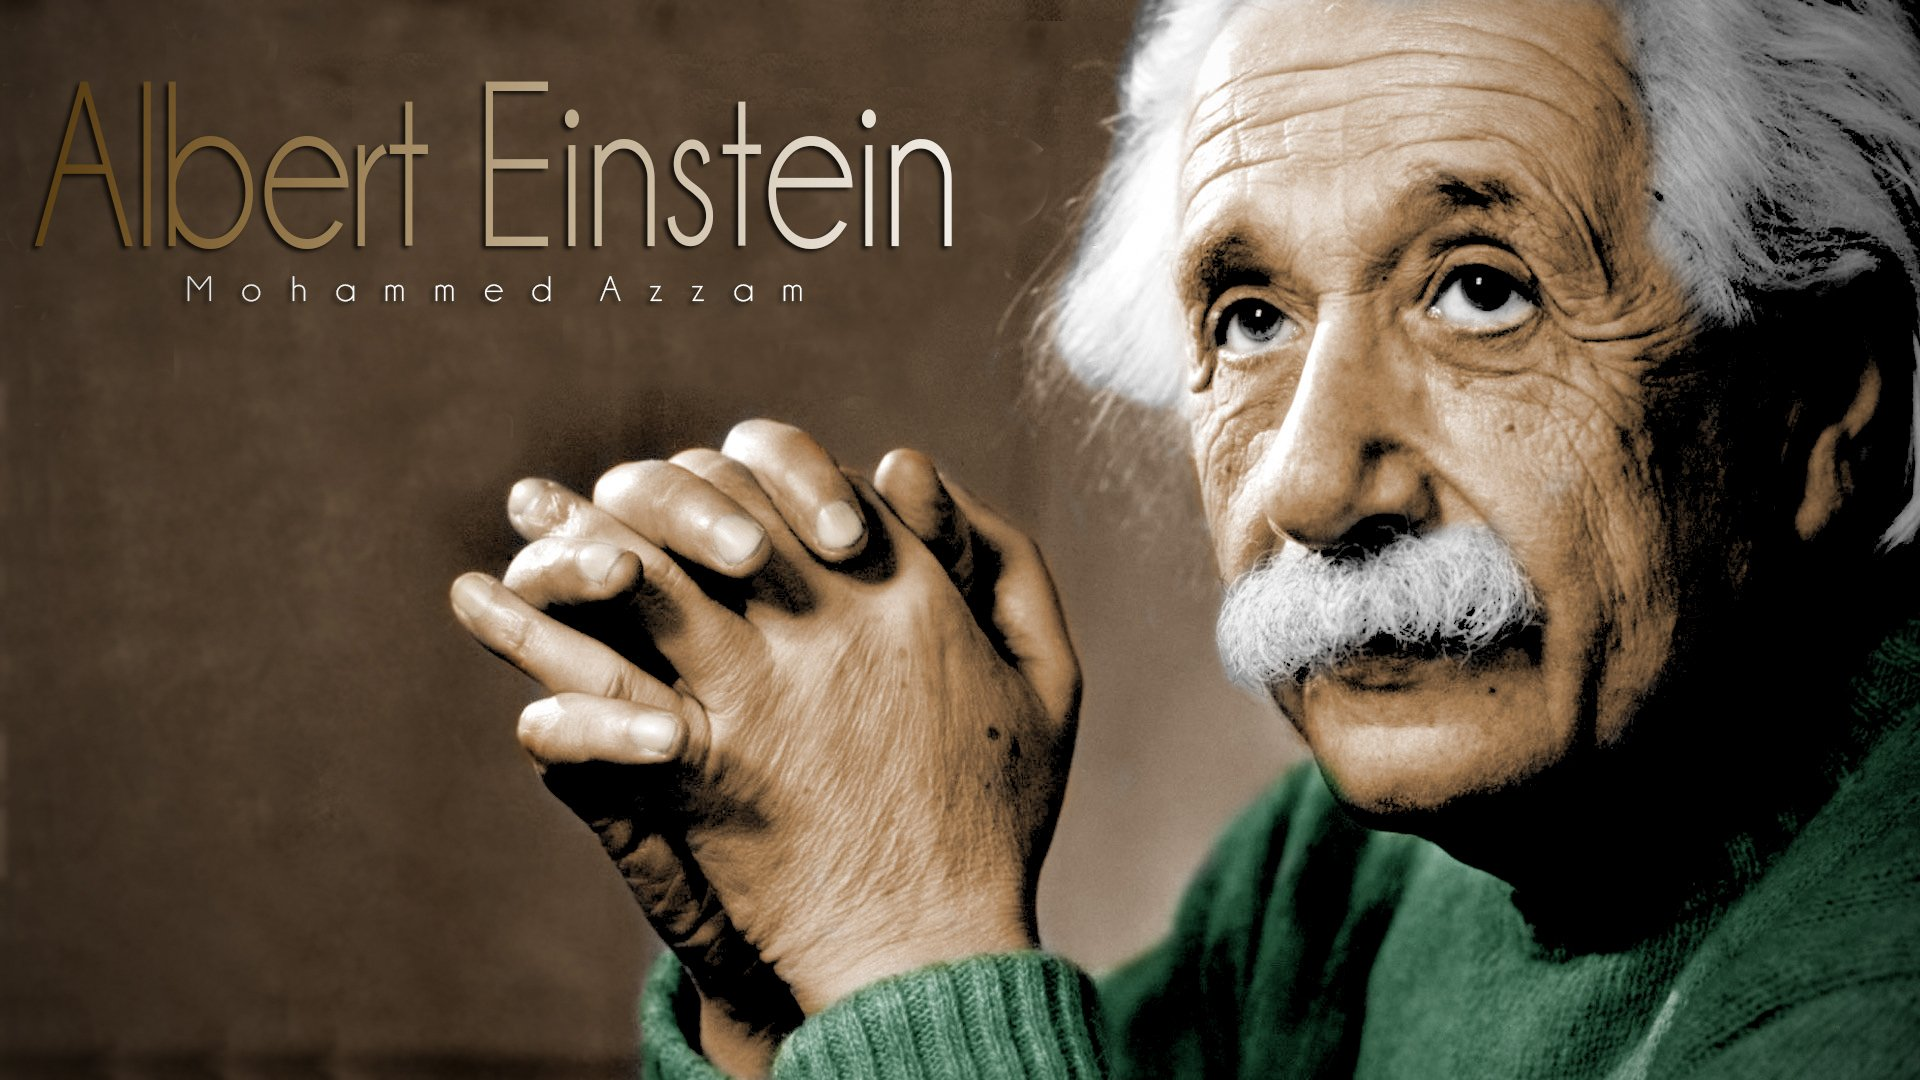 Albert Einstein Full HD Wallpaper And Background Image